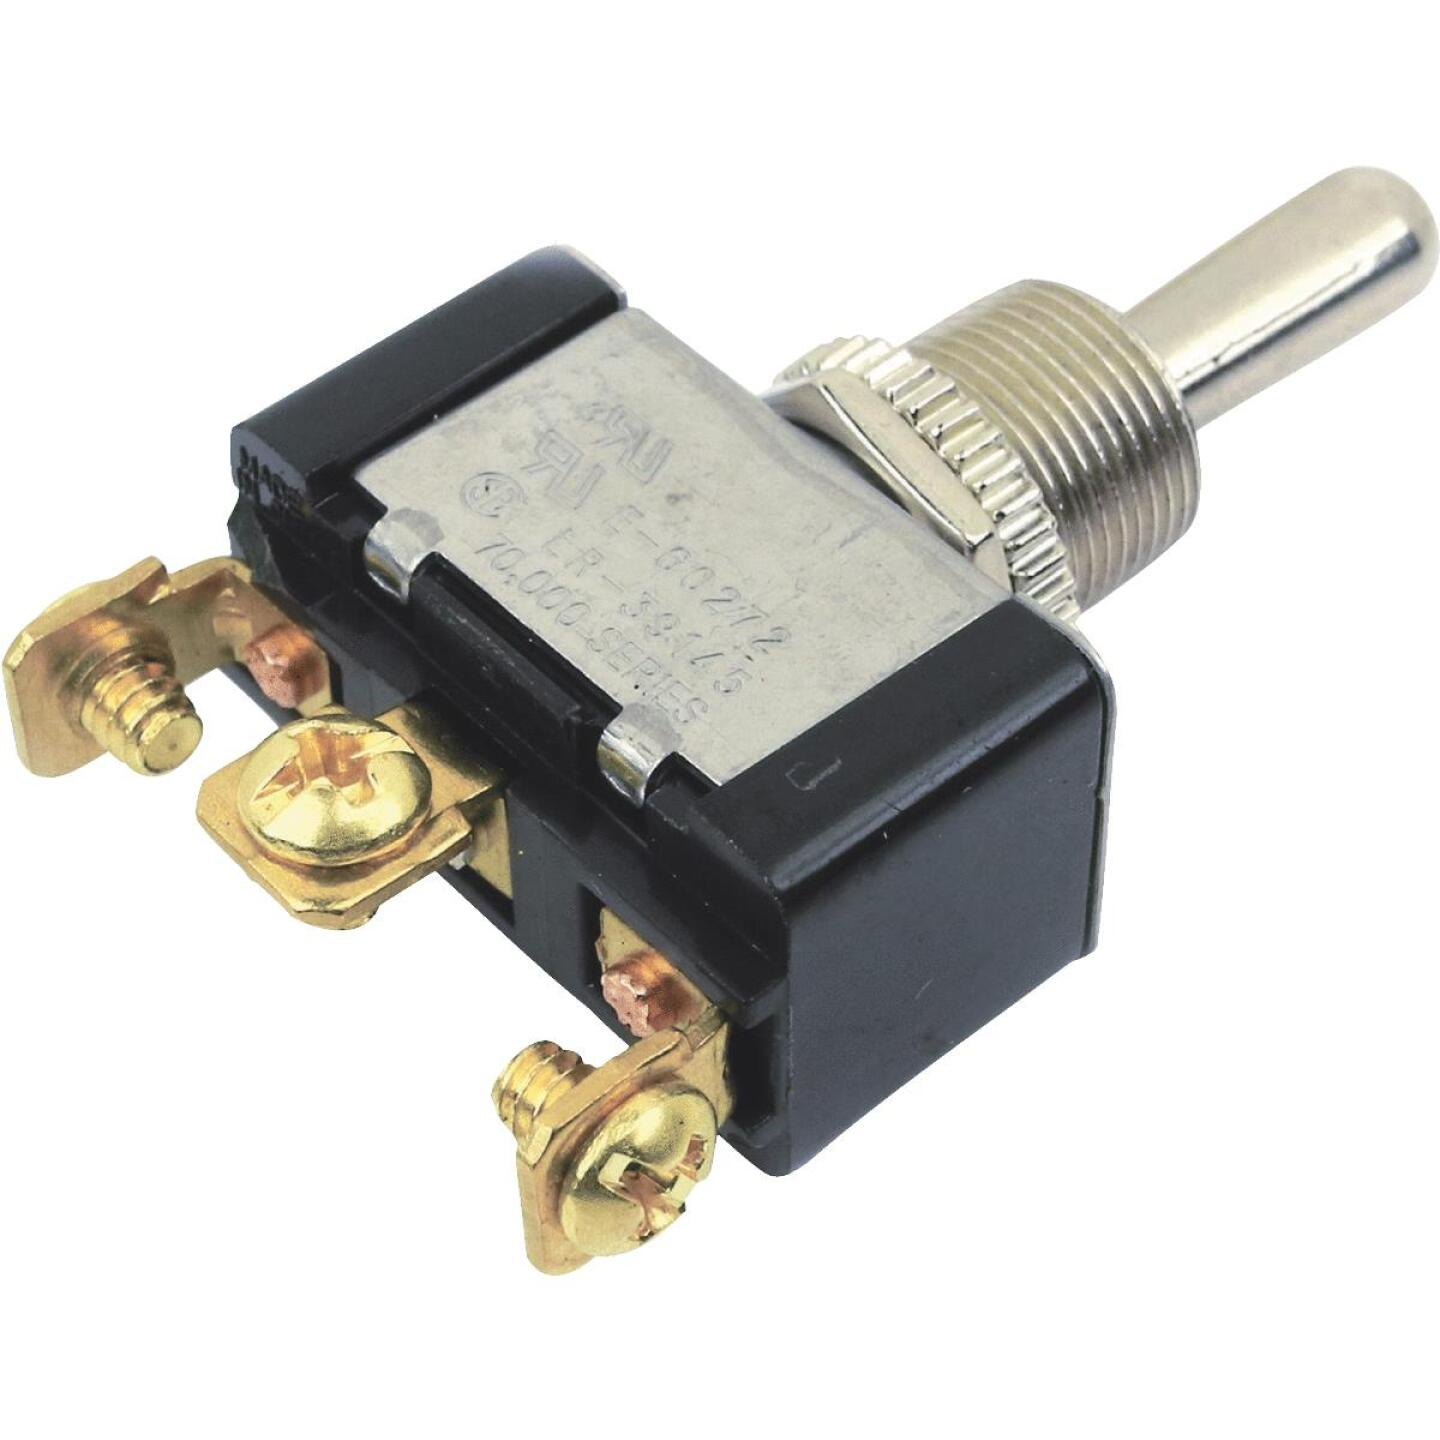 Seachoice 3-Position 25A 12V Toggle Switch Image 1